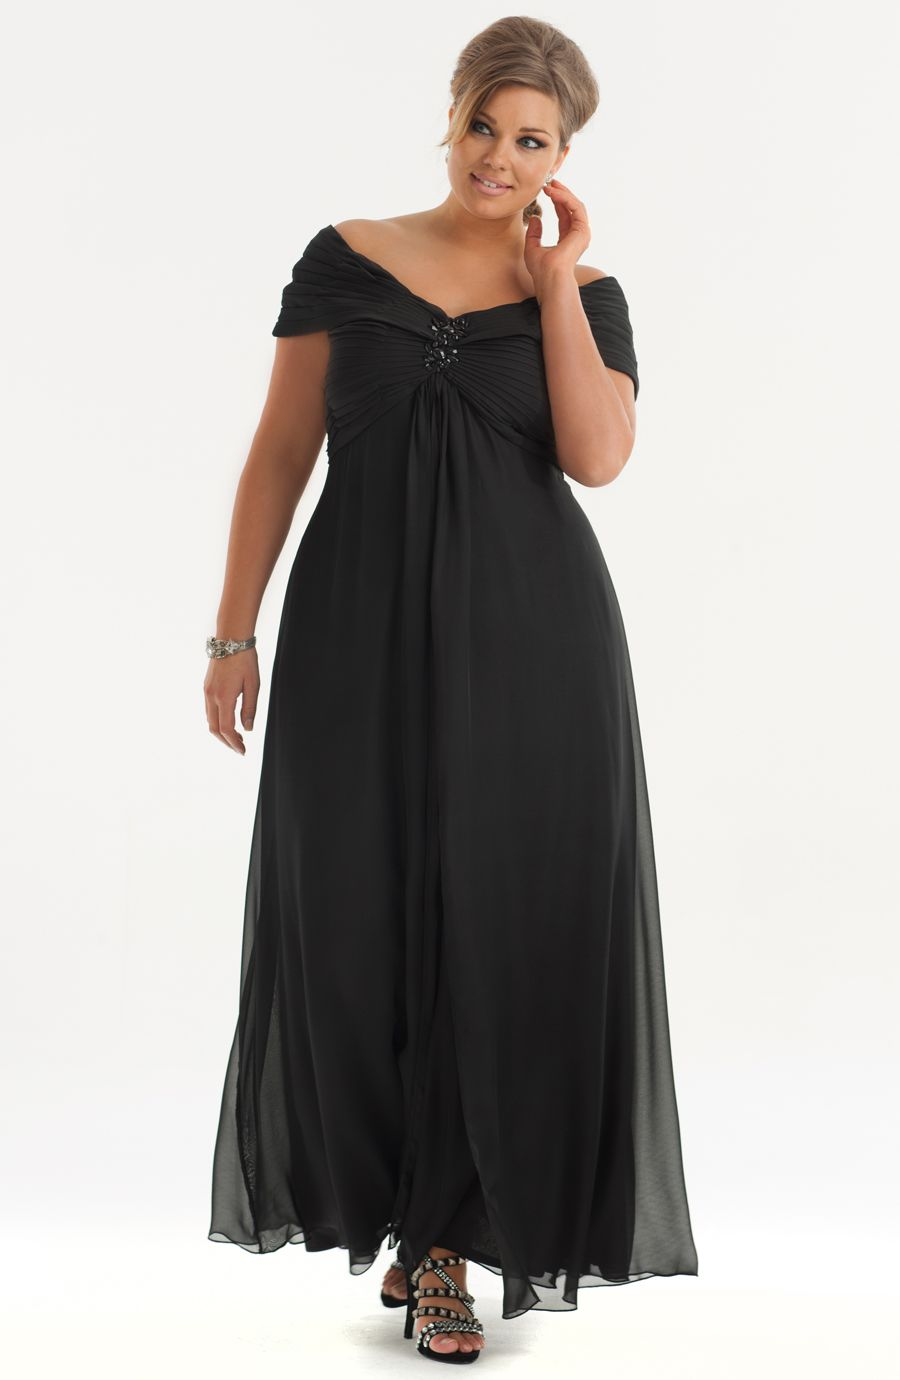 plus+size+evening+dresses |  see dream diva plus size evening